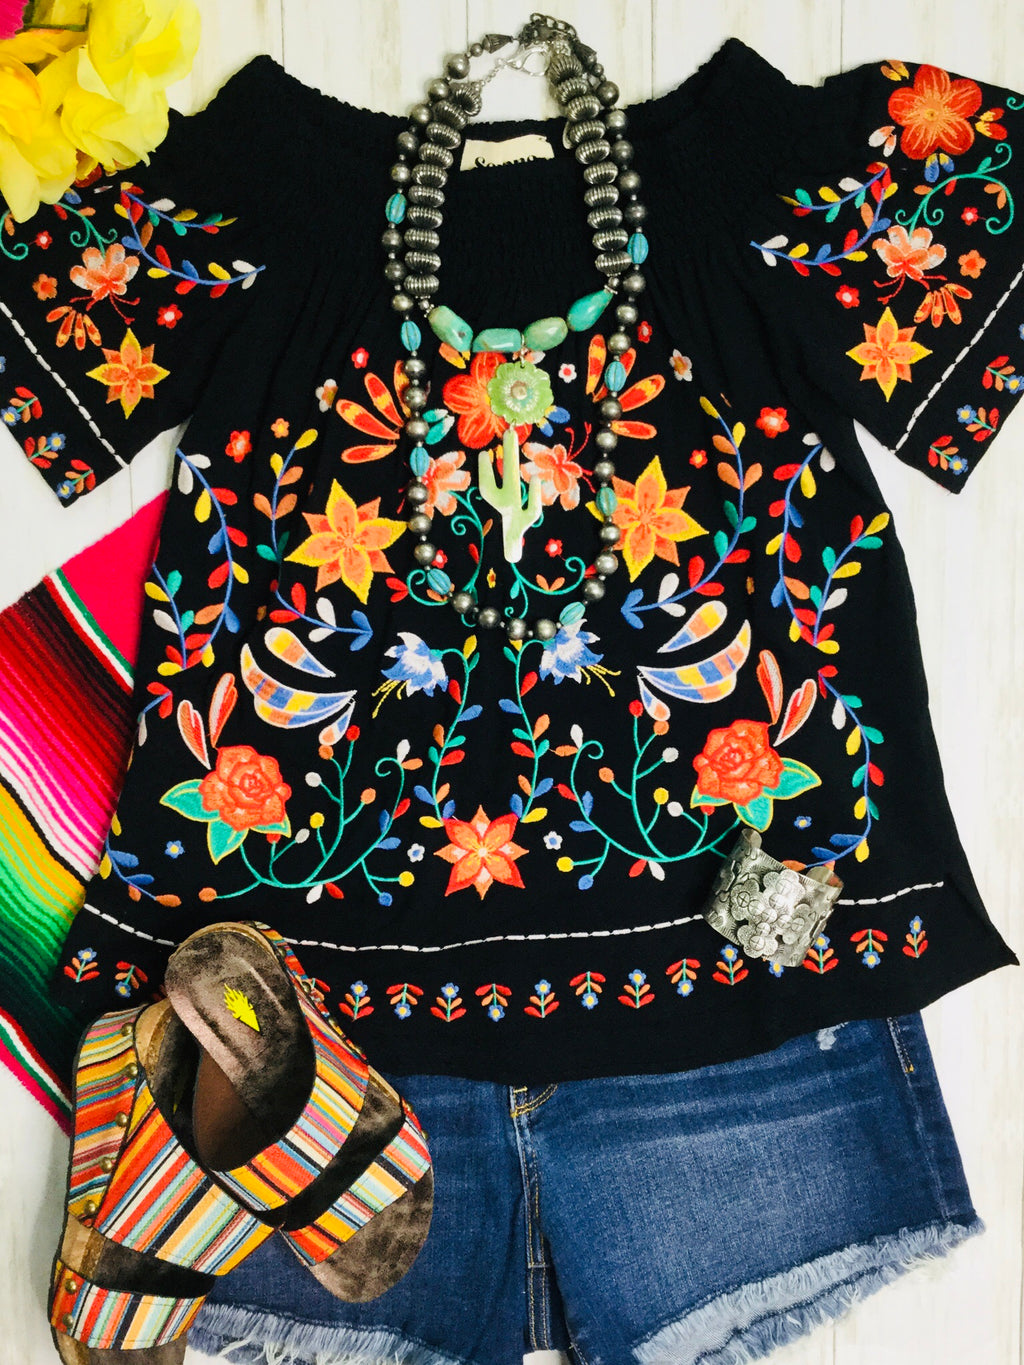 The Margarita Embroidered Top